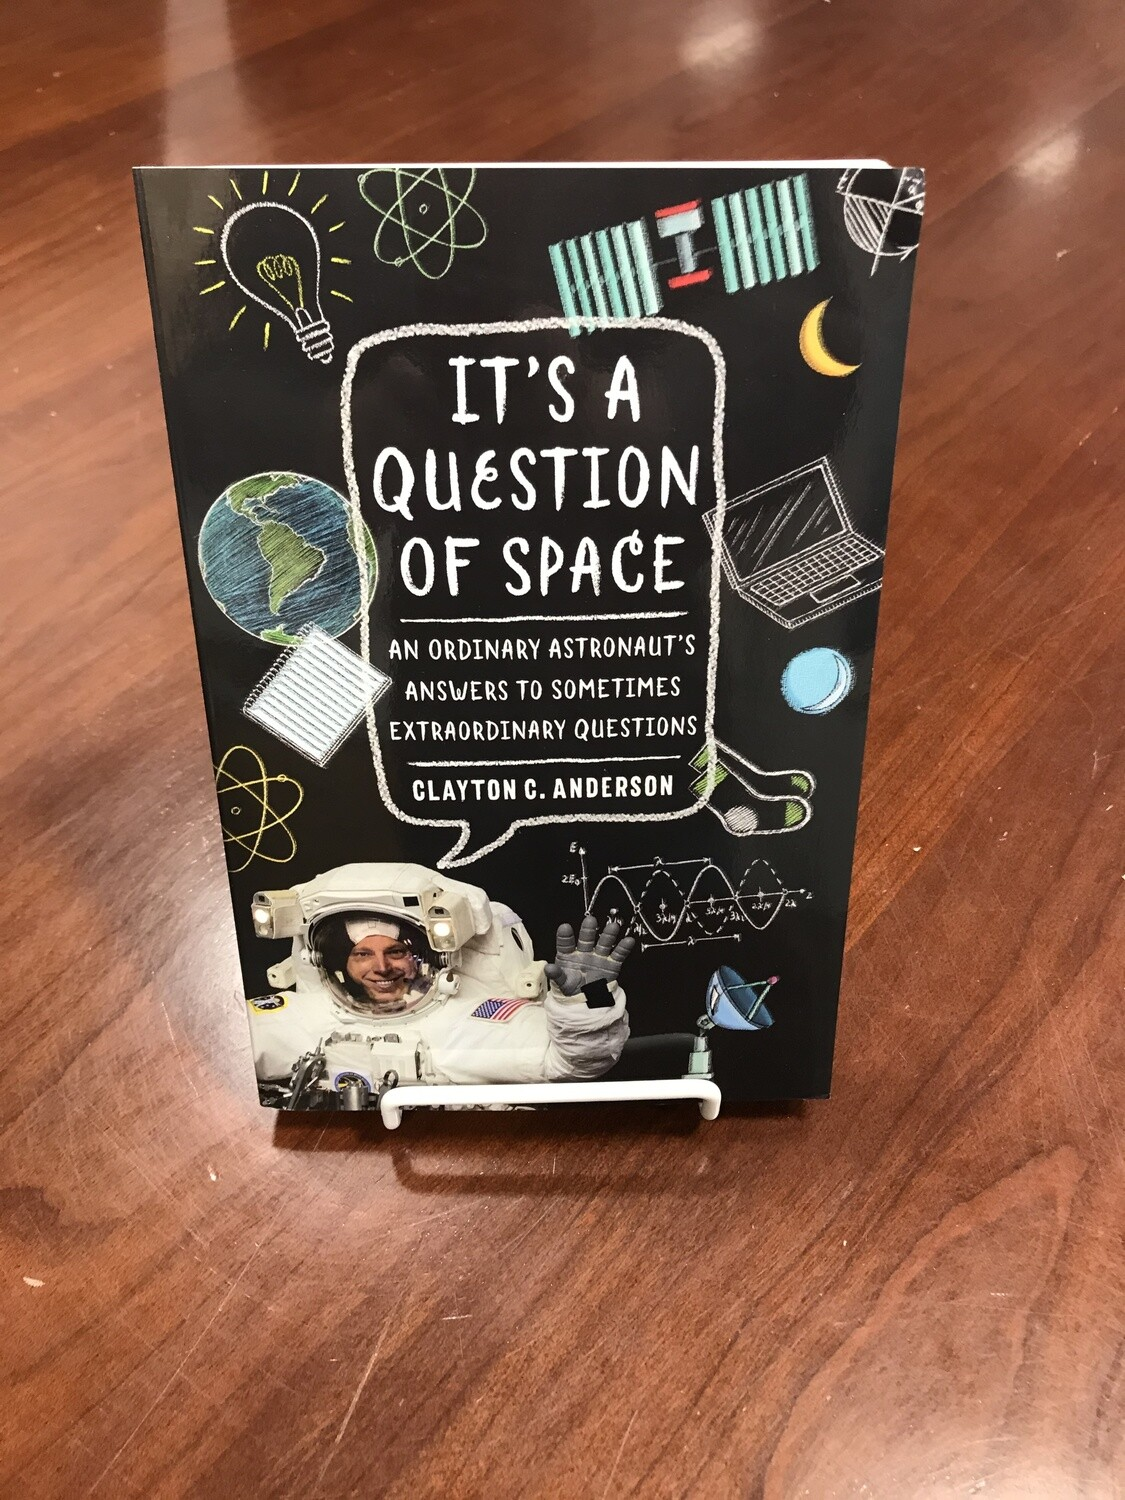 IT'S A QUESTION OF SPACE BOOK